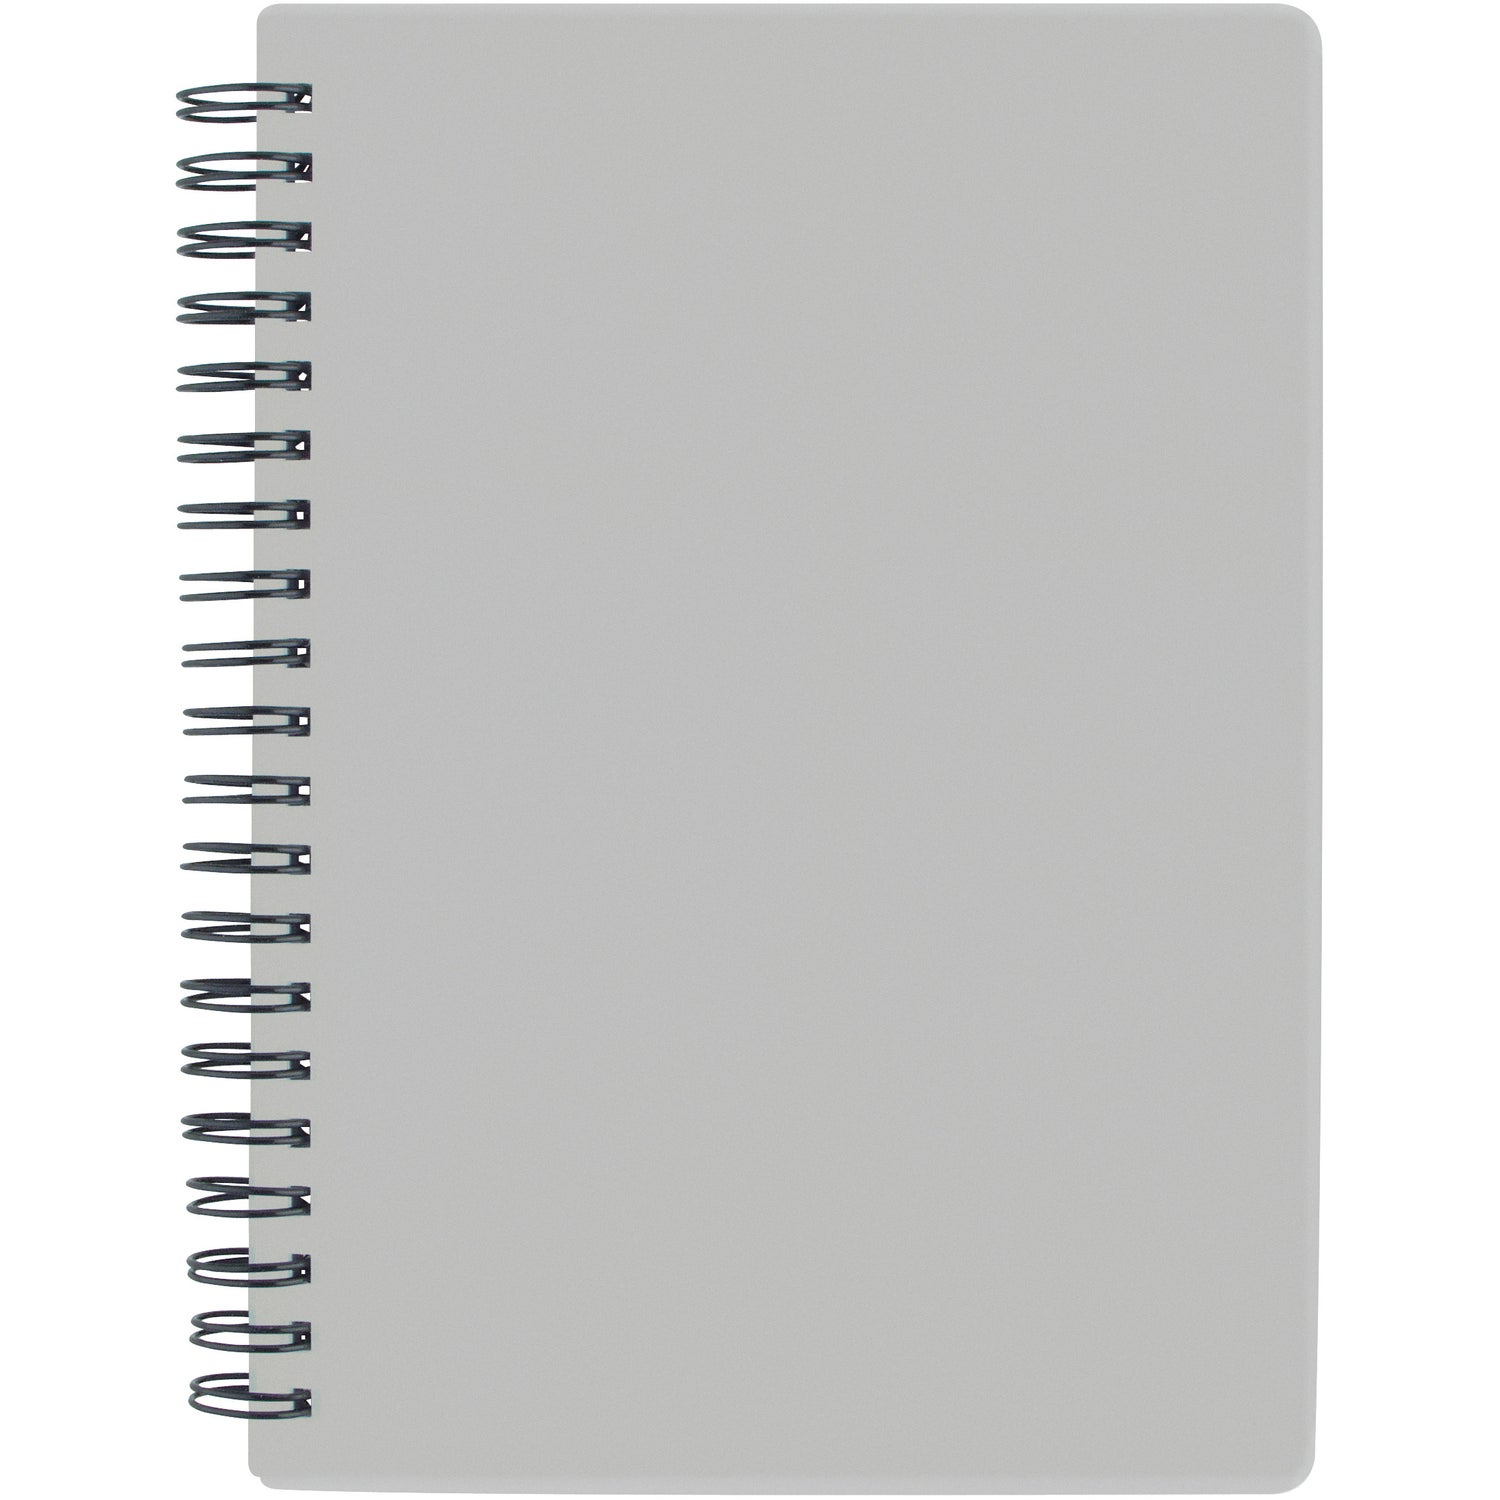 Spiral Notebook Spiral-bound-notebook-    Blank Spiral Notebook